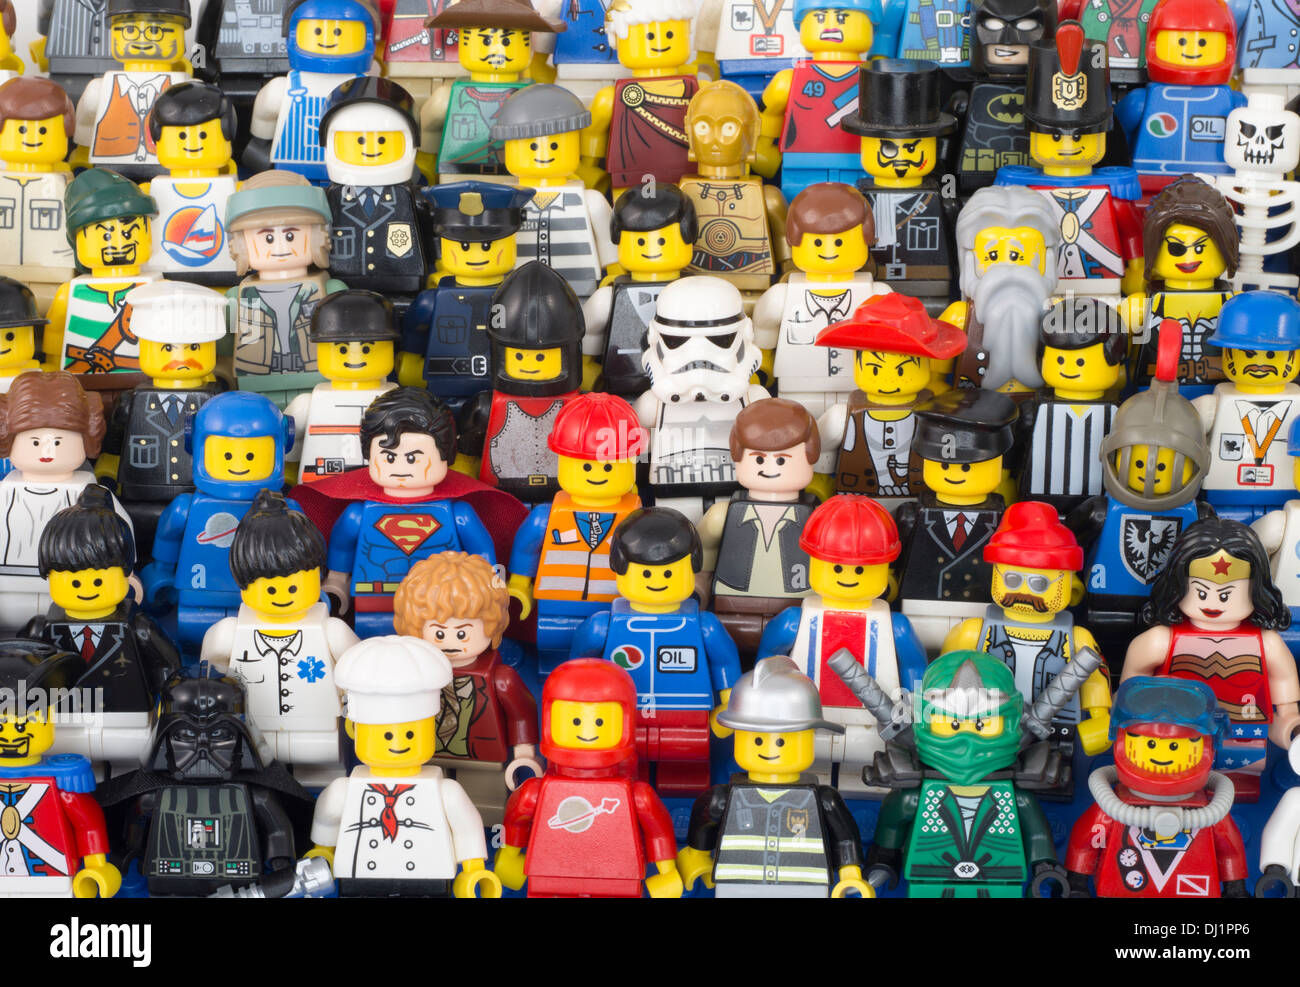 LEGO minifigures both classic and modern versions from early 80's spaceman to Stormtroopers and a Hobbit. - Stock Image